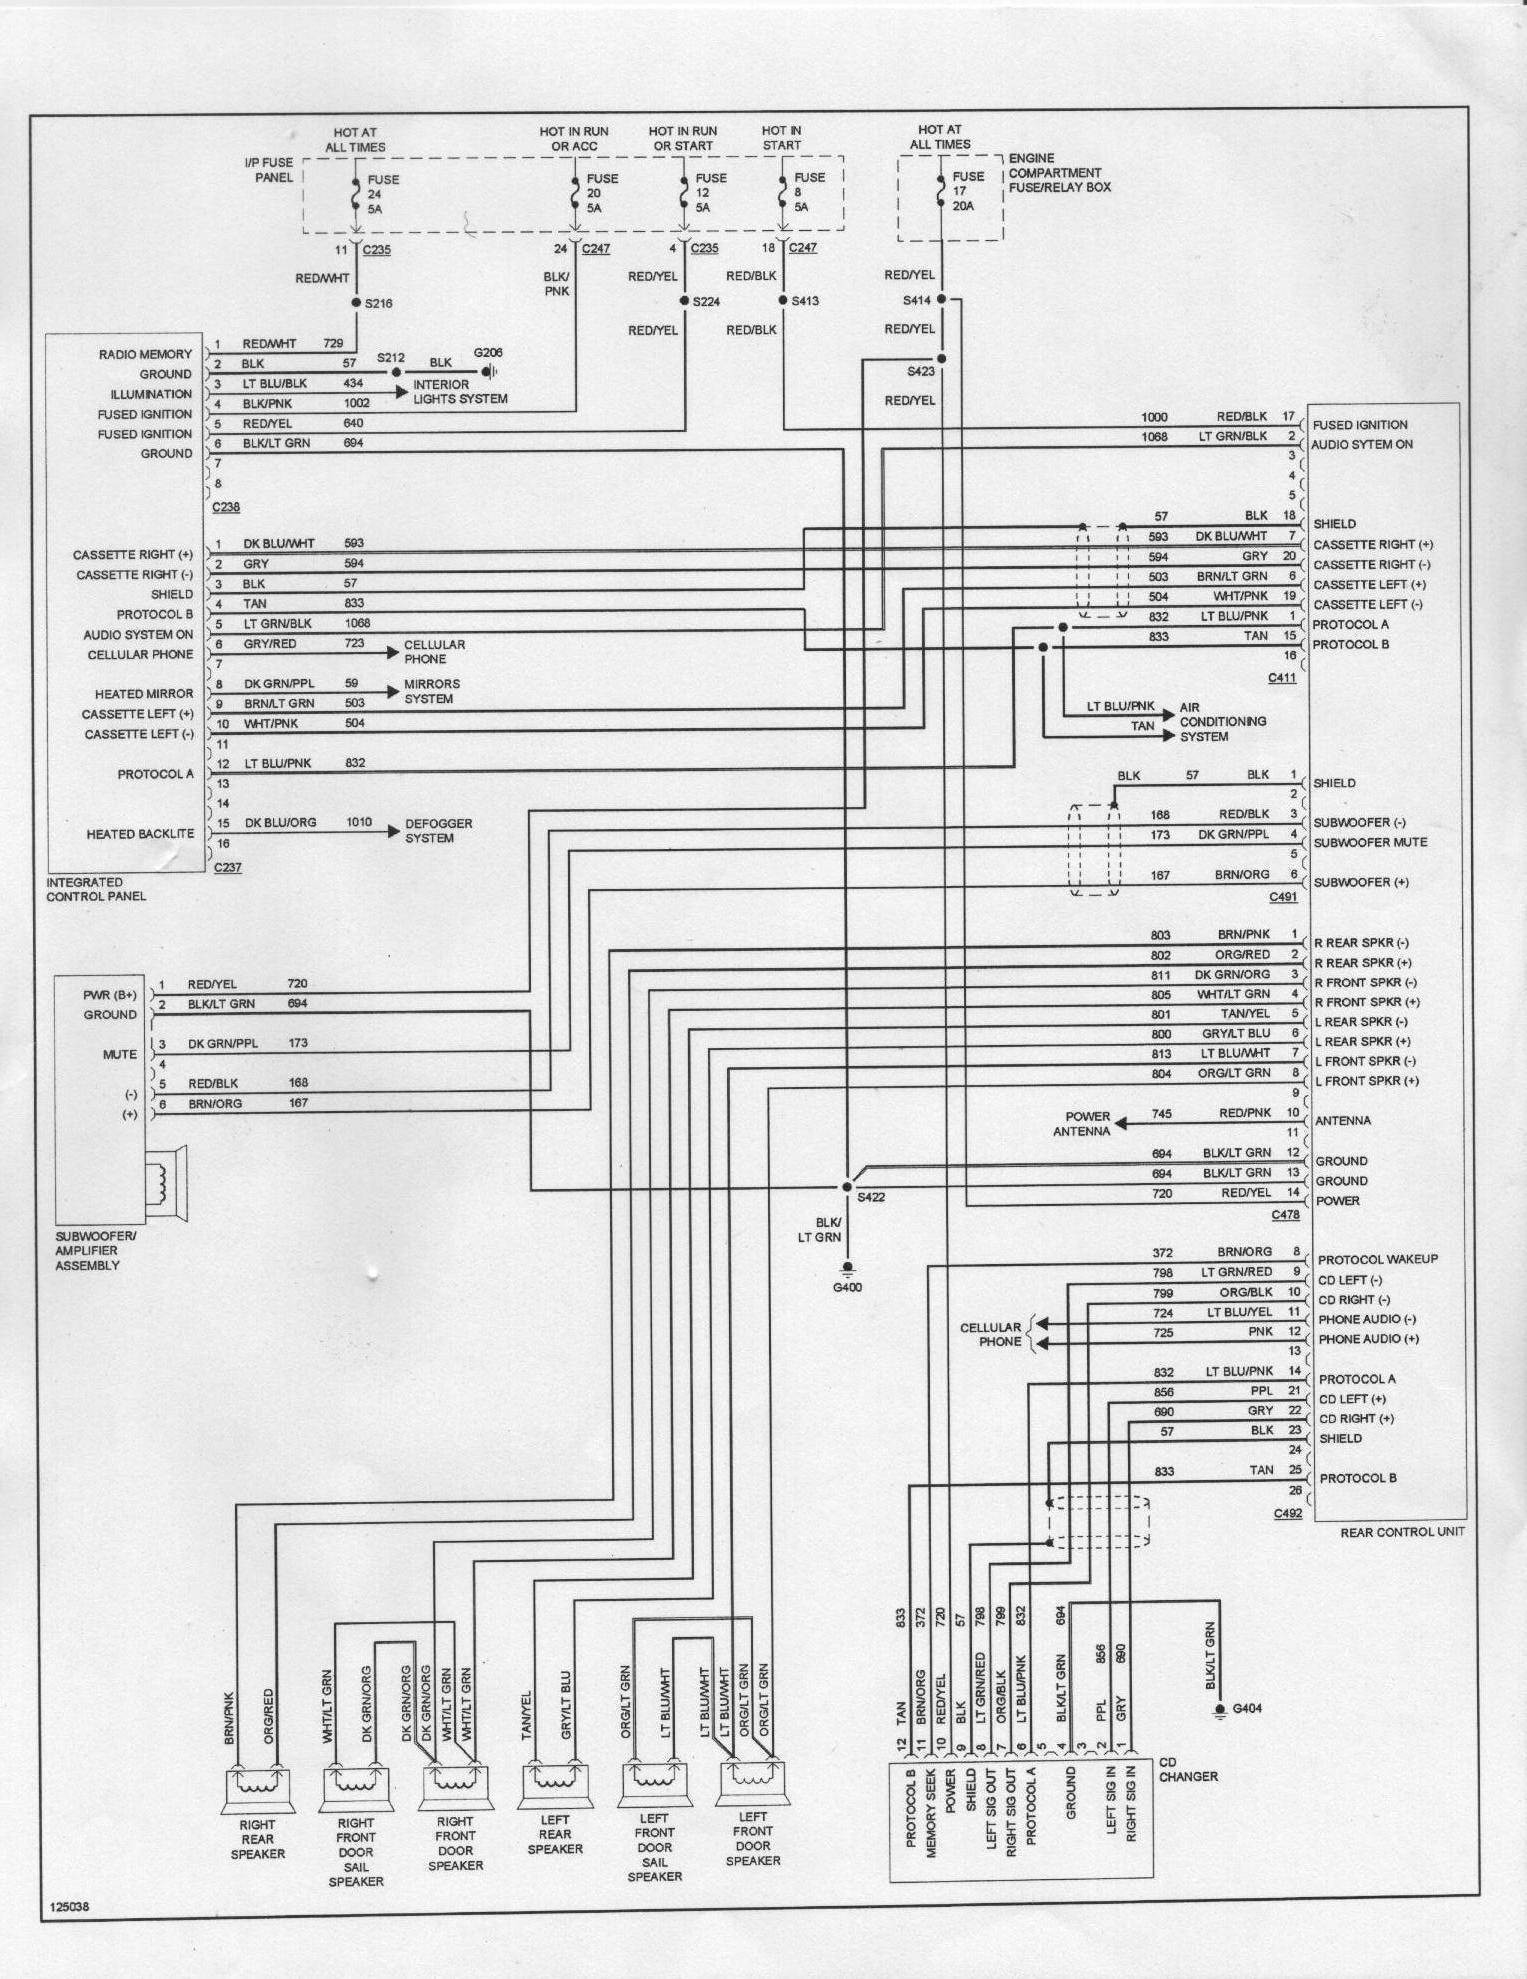 2002 Ford Taurus Stereo Wiring Diagram from detoxicrecenze.com